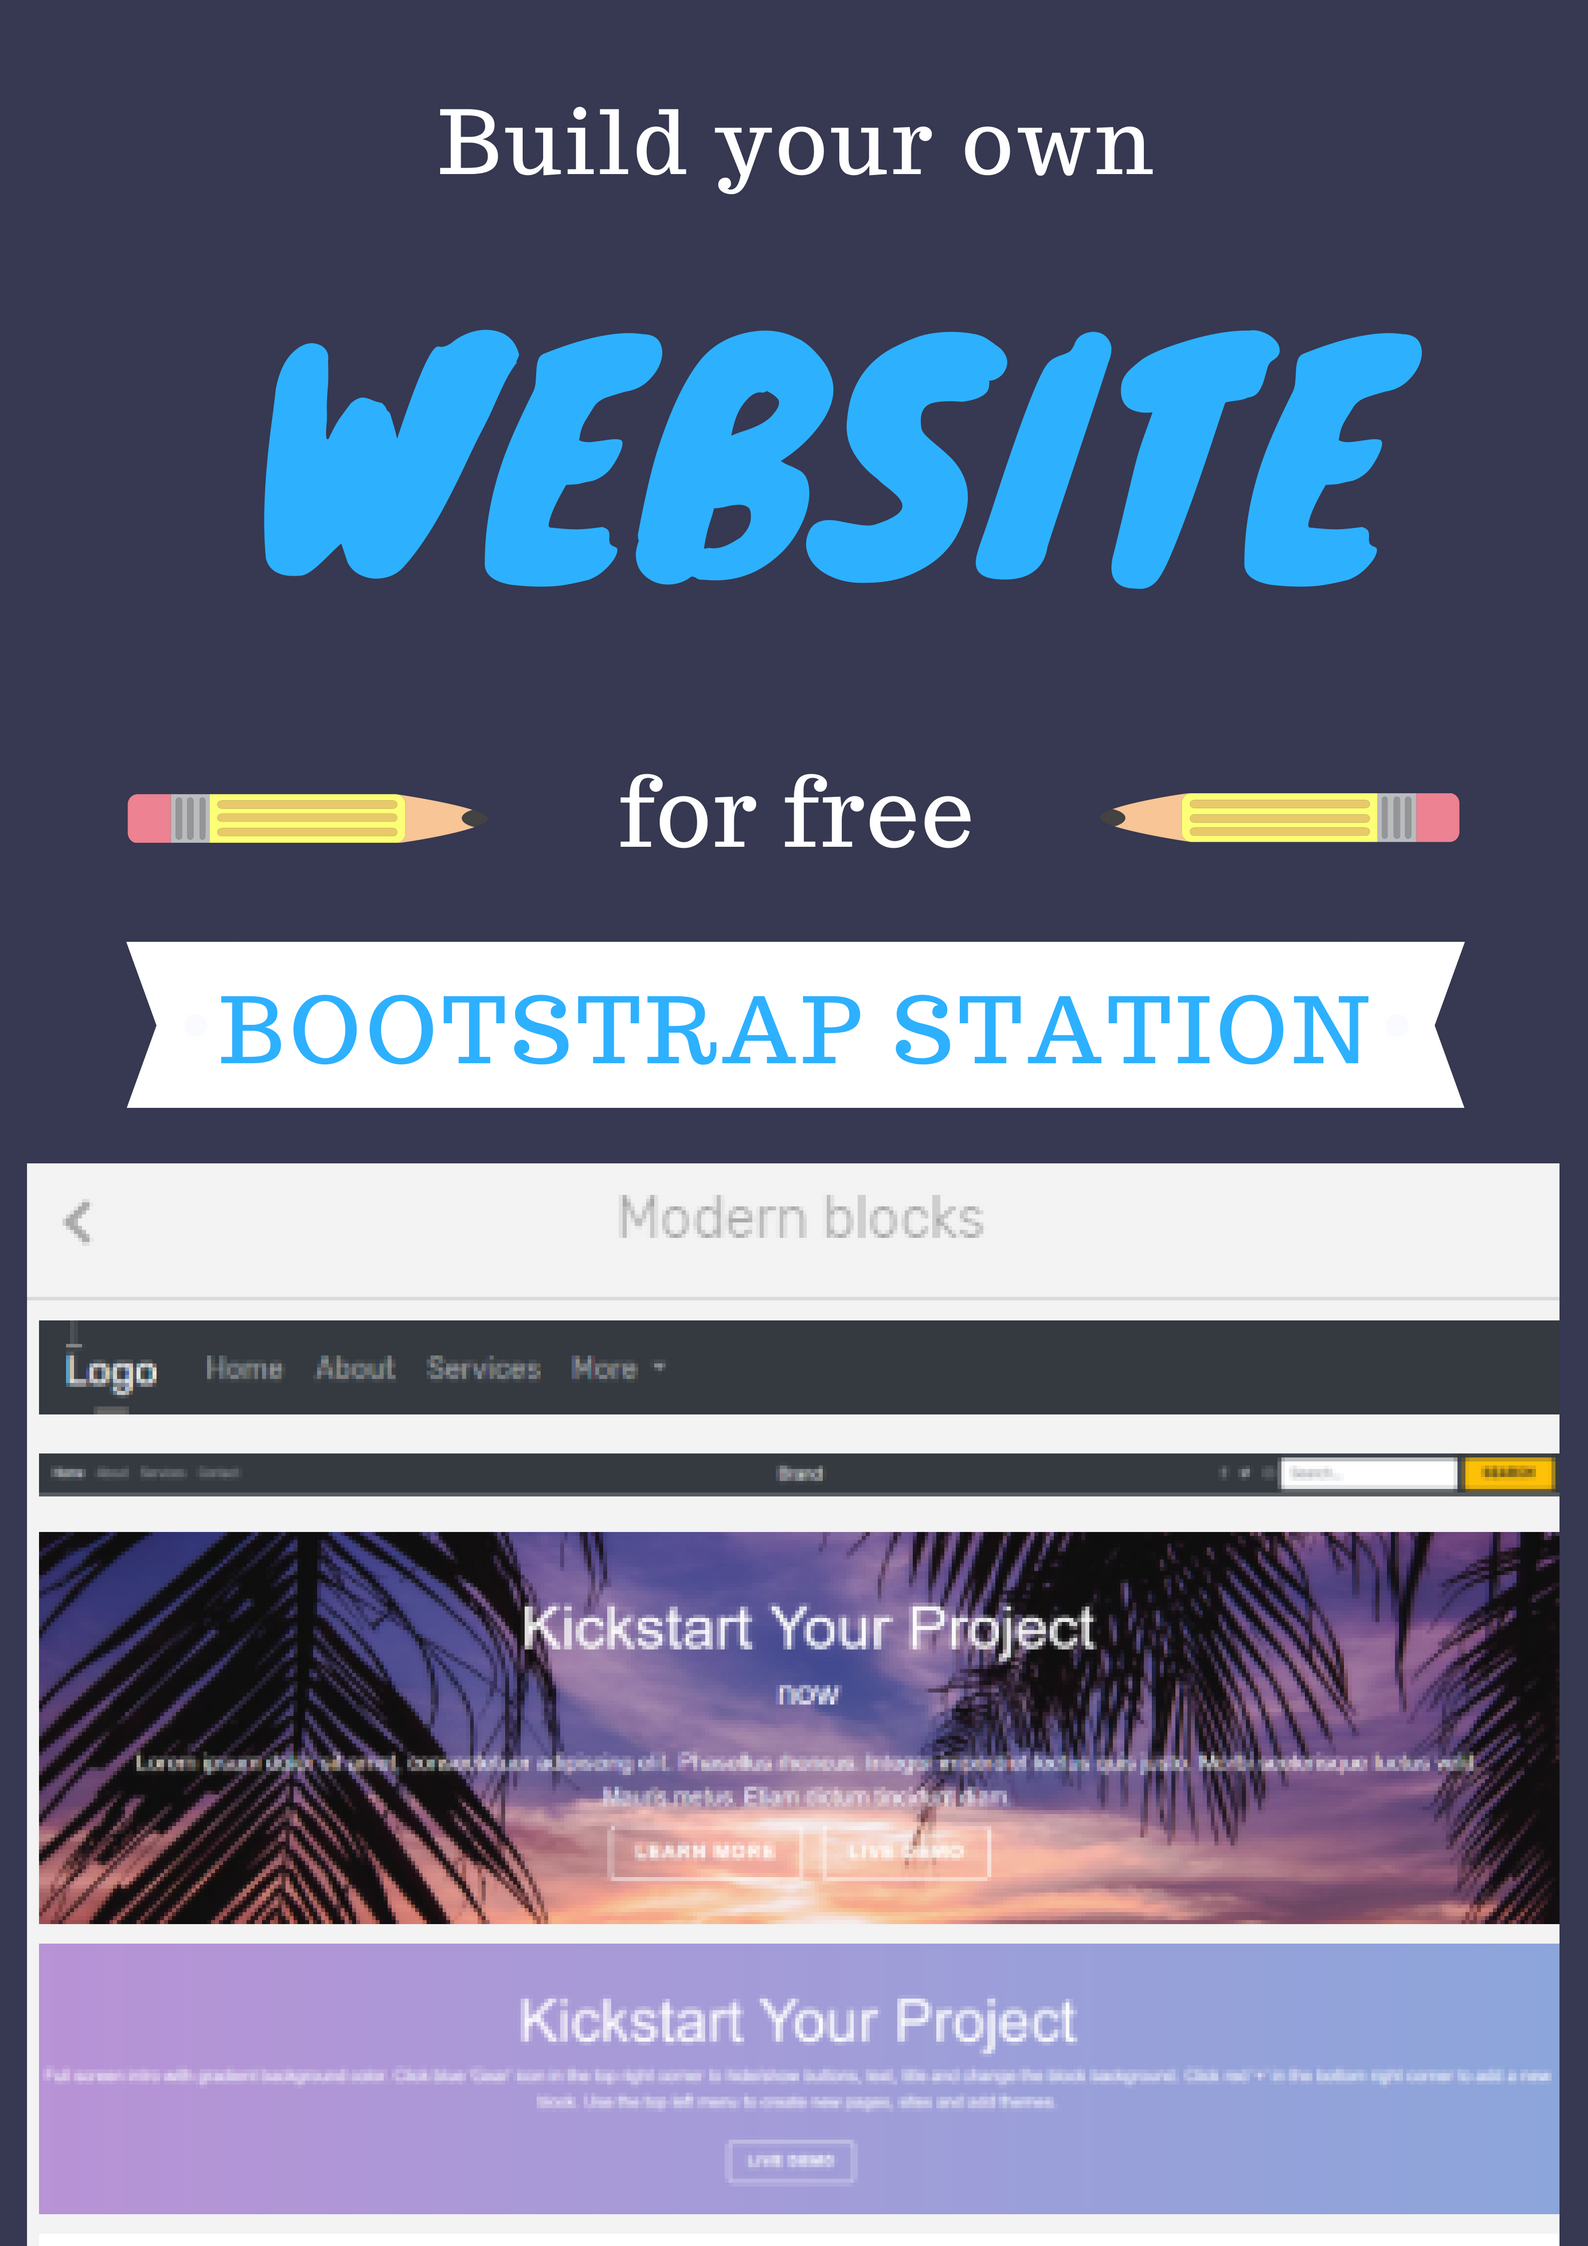 Bootstrap station